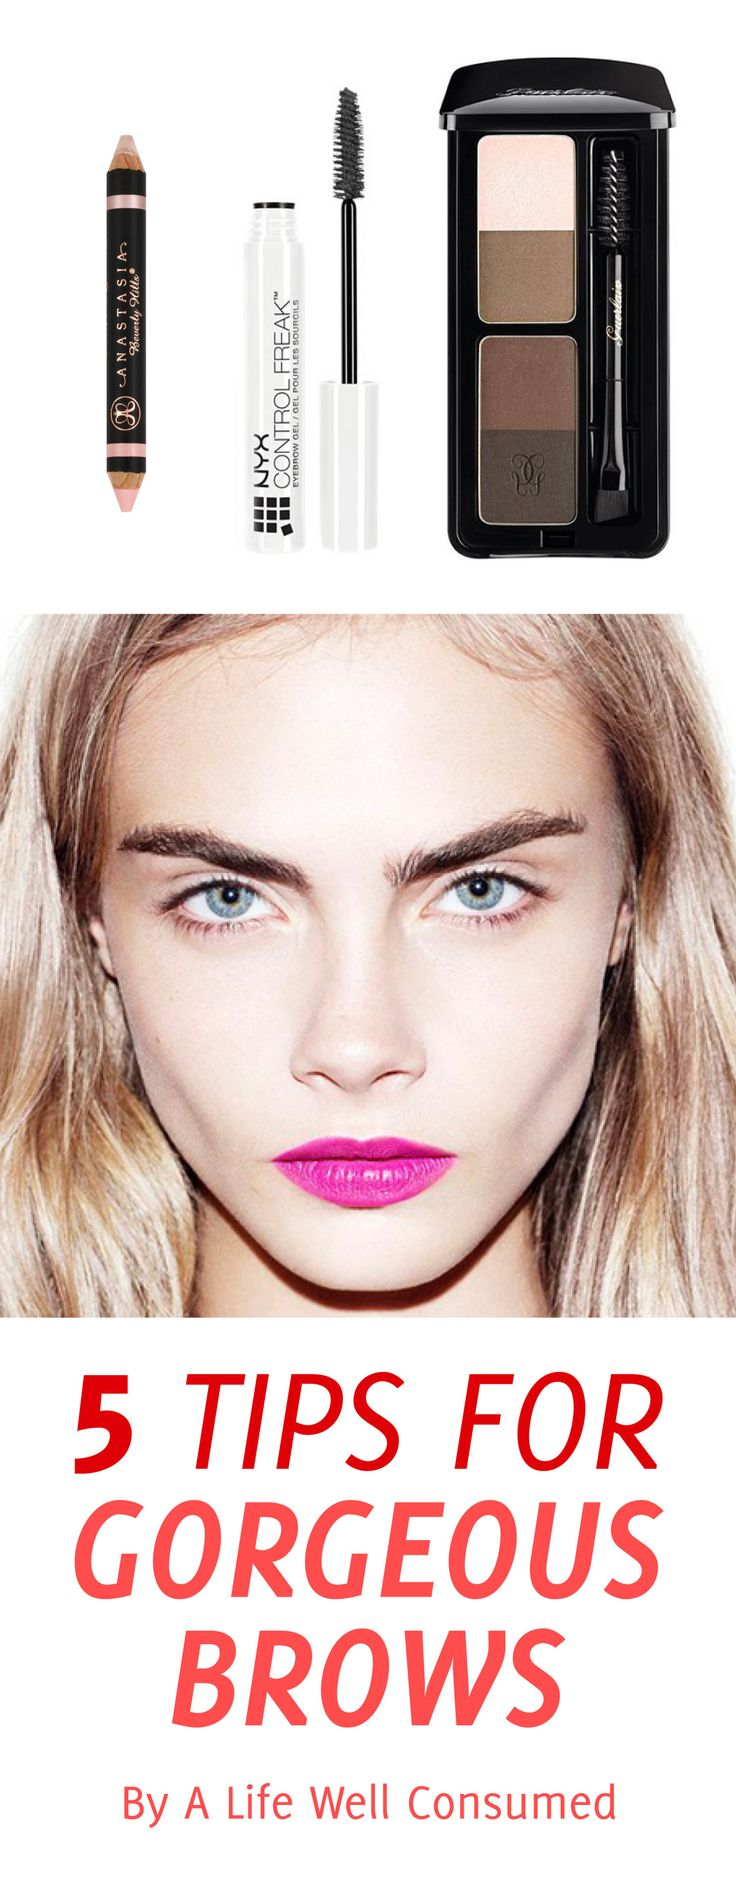 The 5 best tips for gorgeous brows are on the blog. Want brows like Cara Delevigne? Then these tips will put you on the right track.